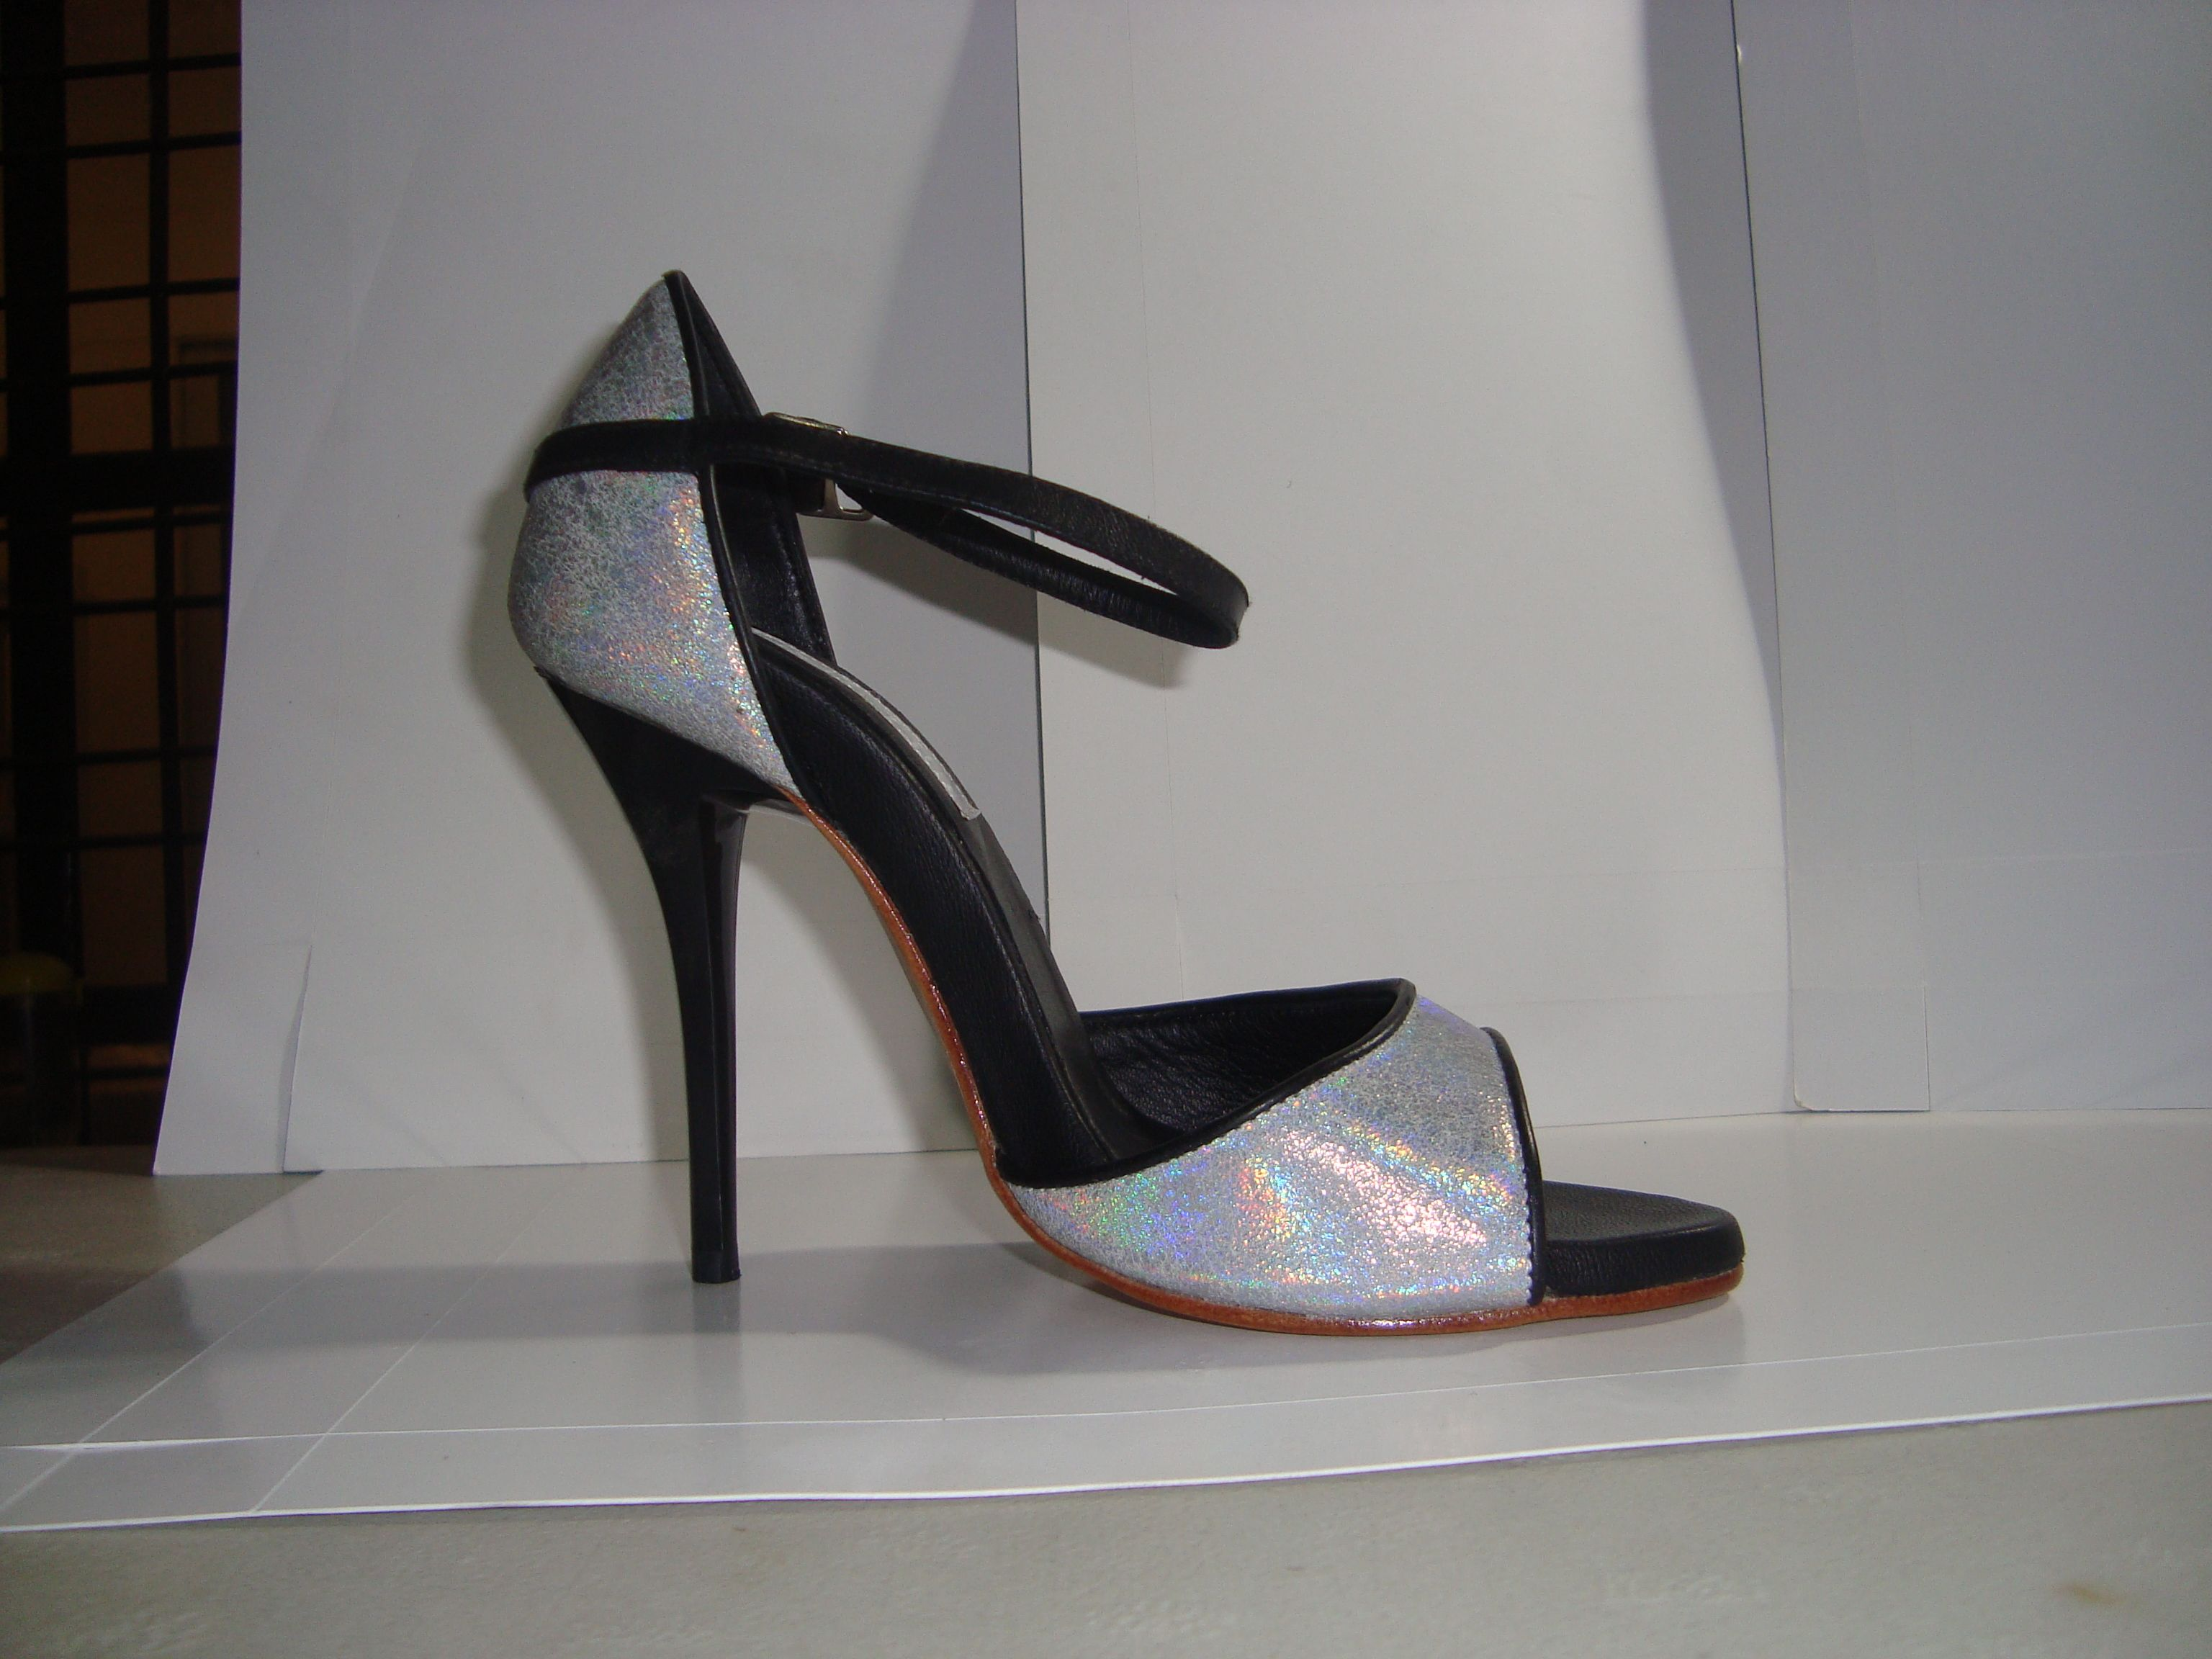 Holographic silver tango shoe also available with smaller